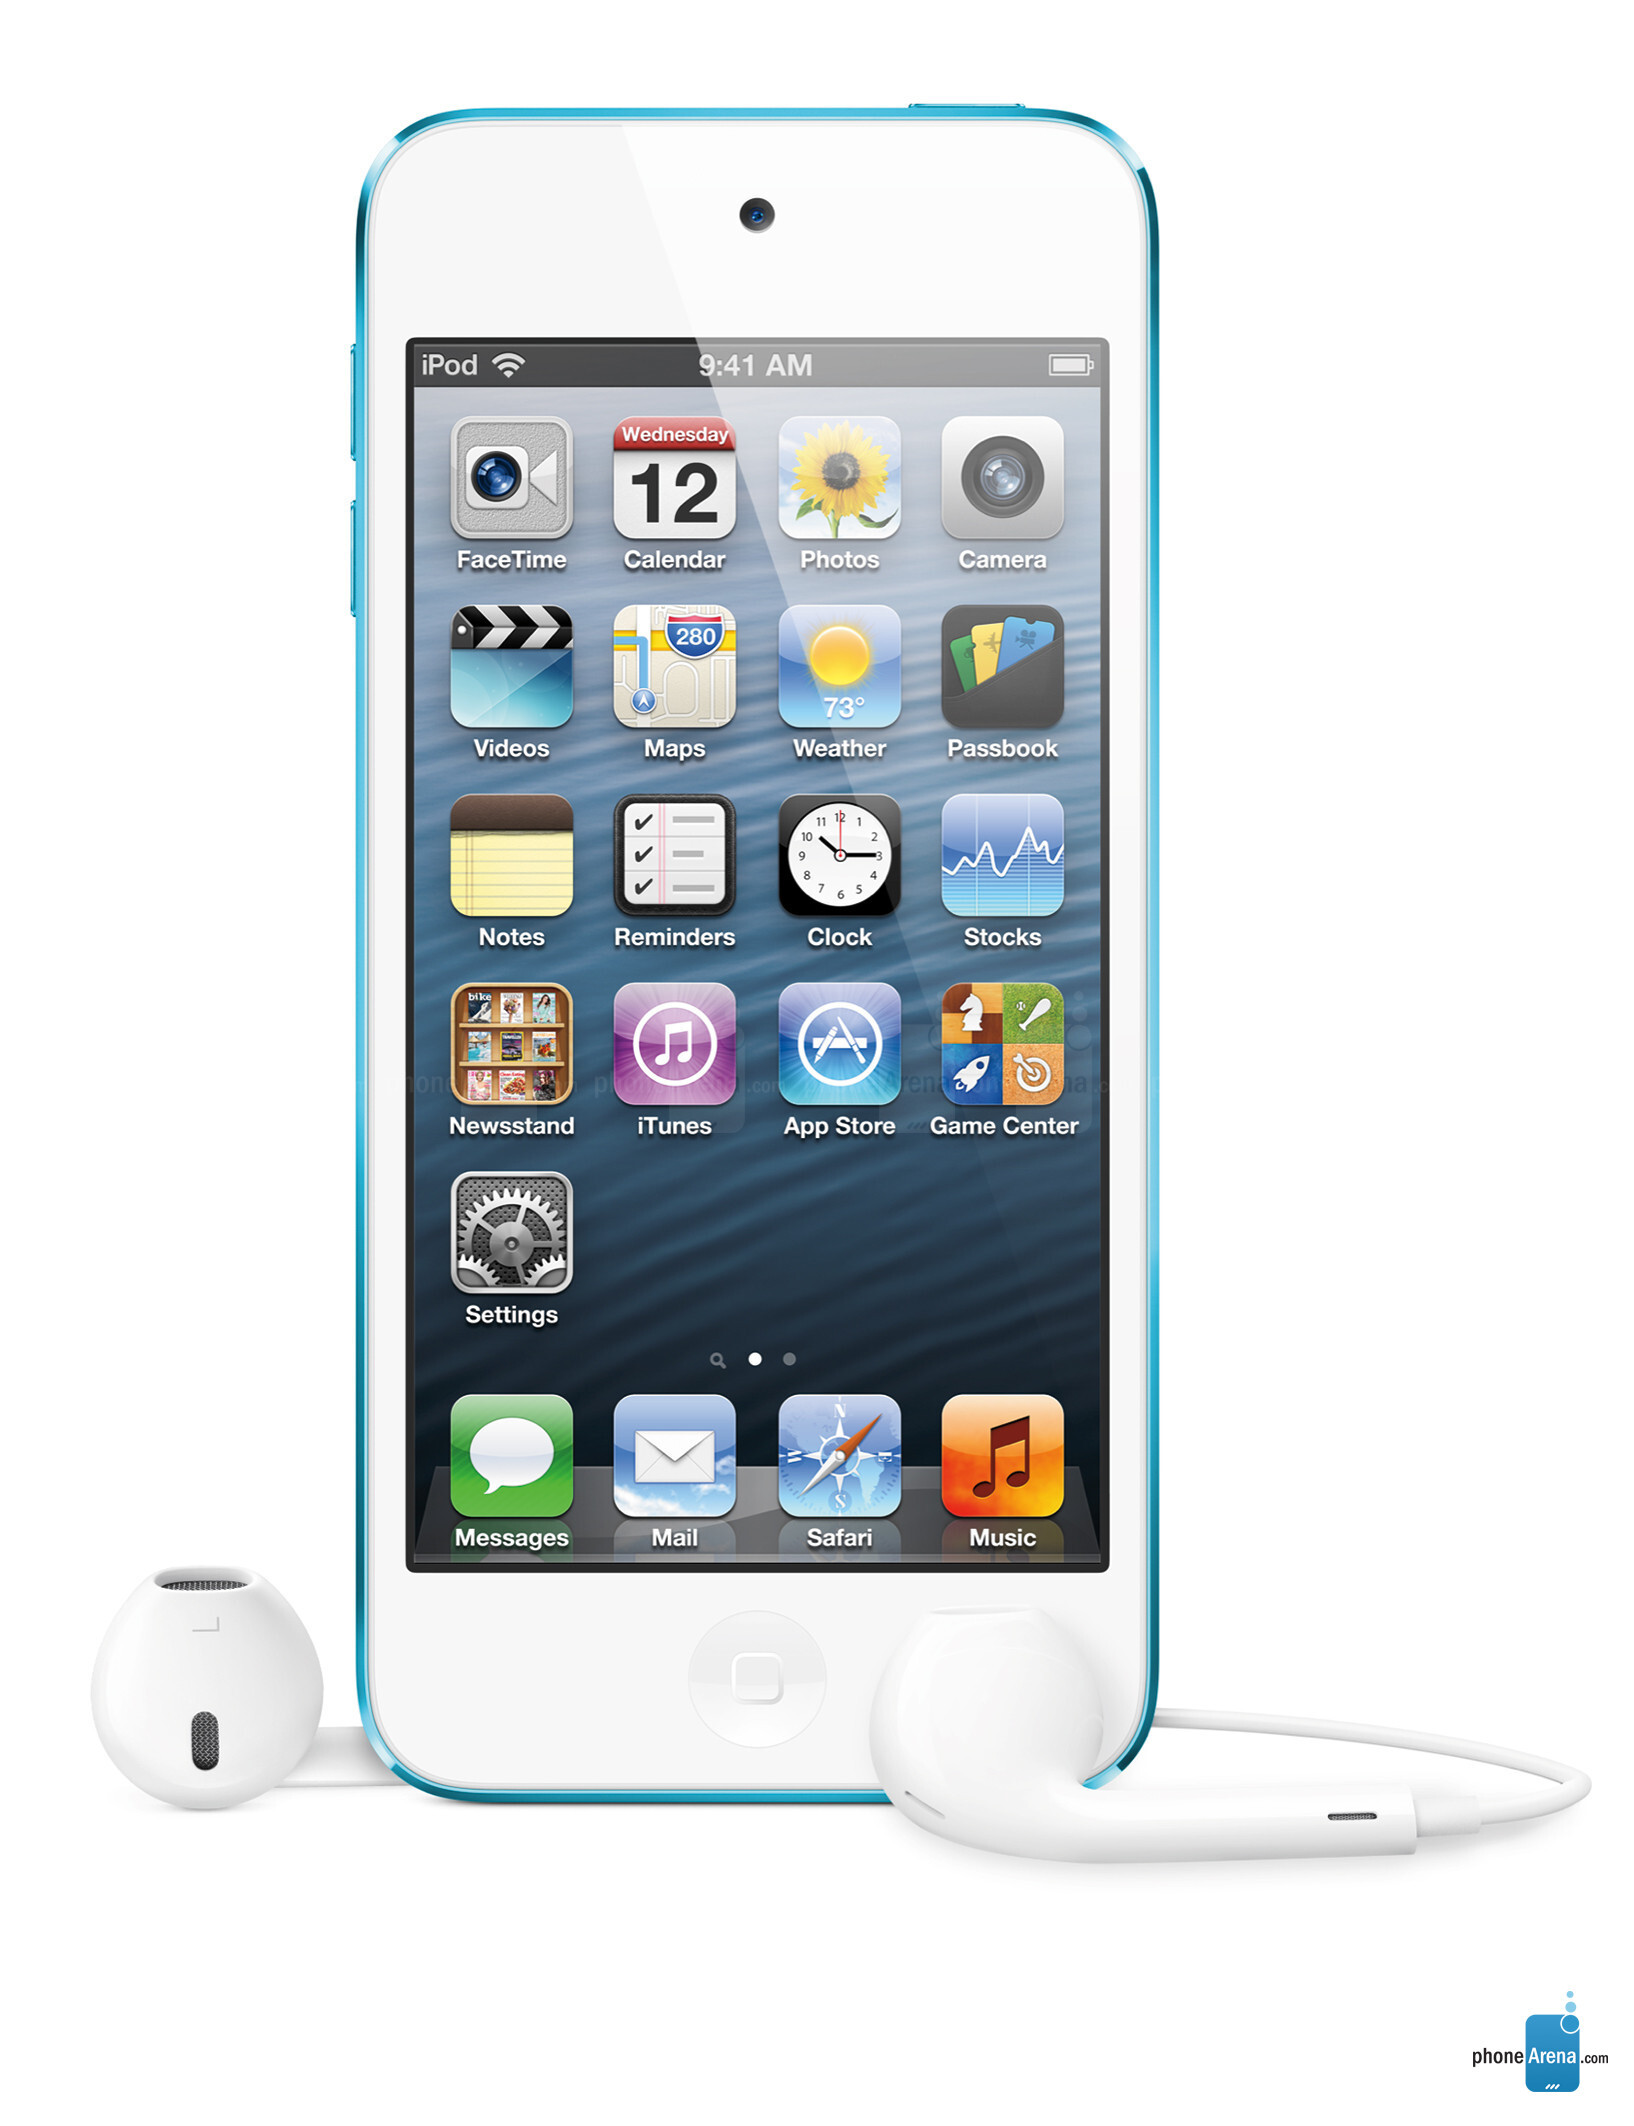 Apple iPod touch 5th generation full specs